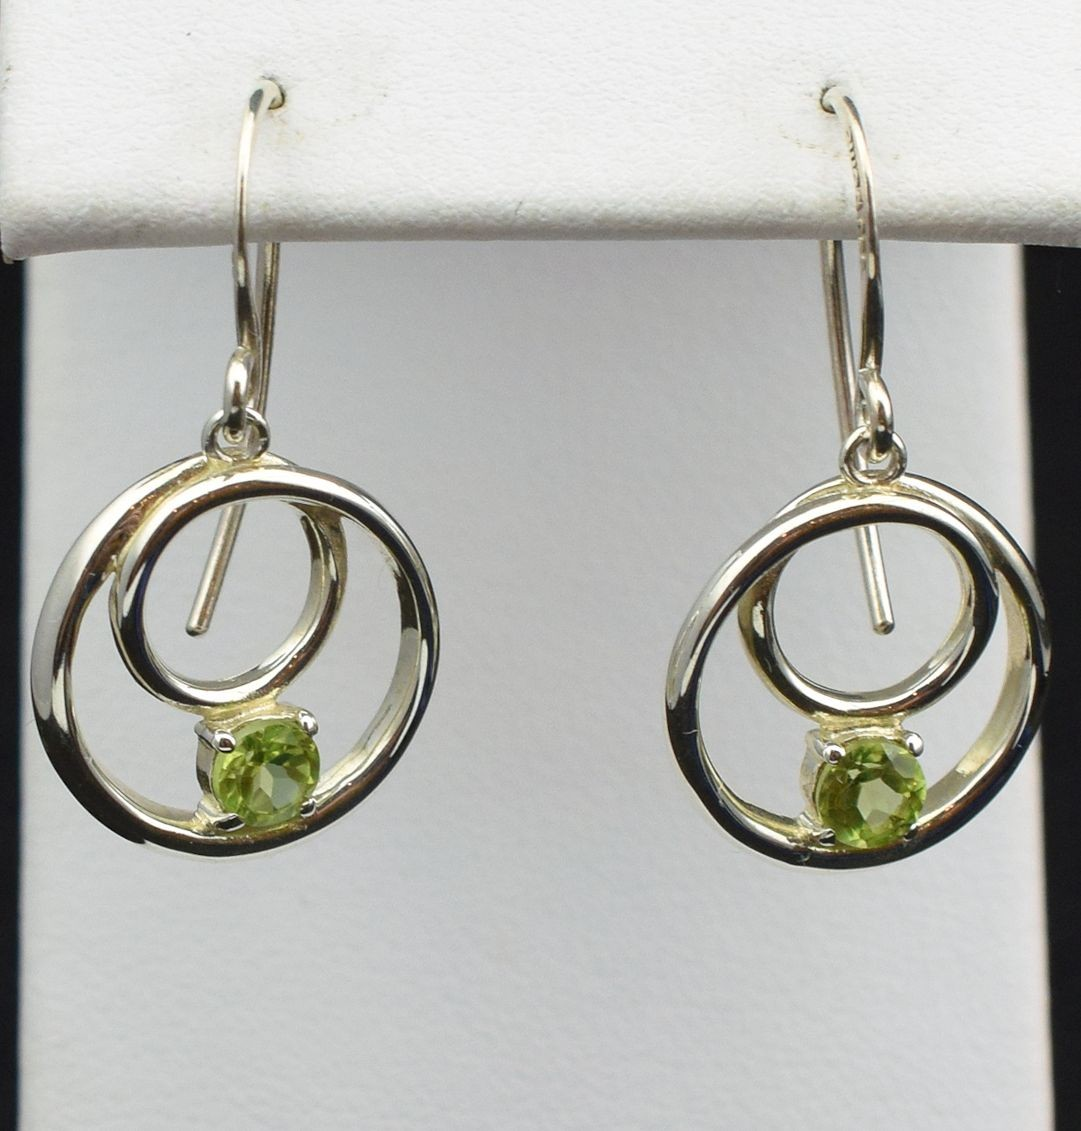 Es 0281 Peridot and Sterling Silver Earrings (SOLD)